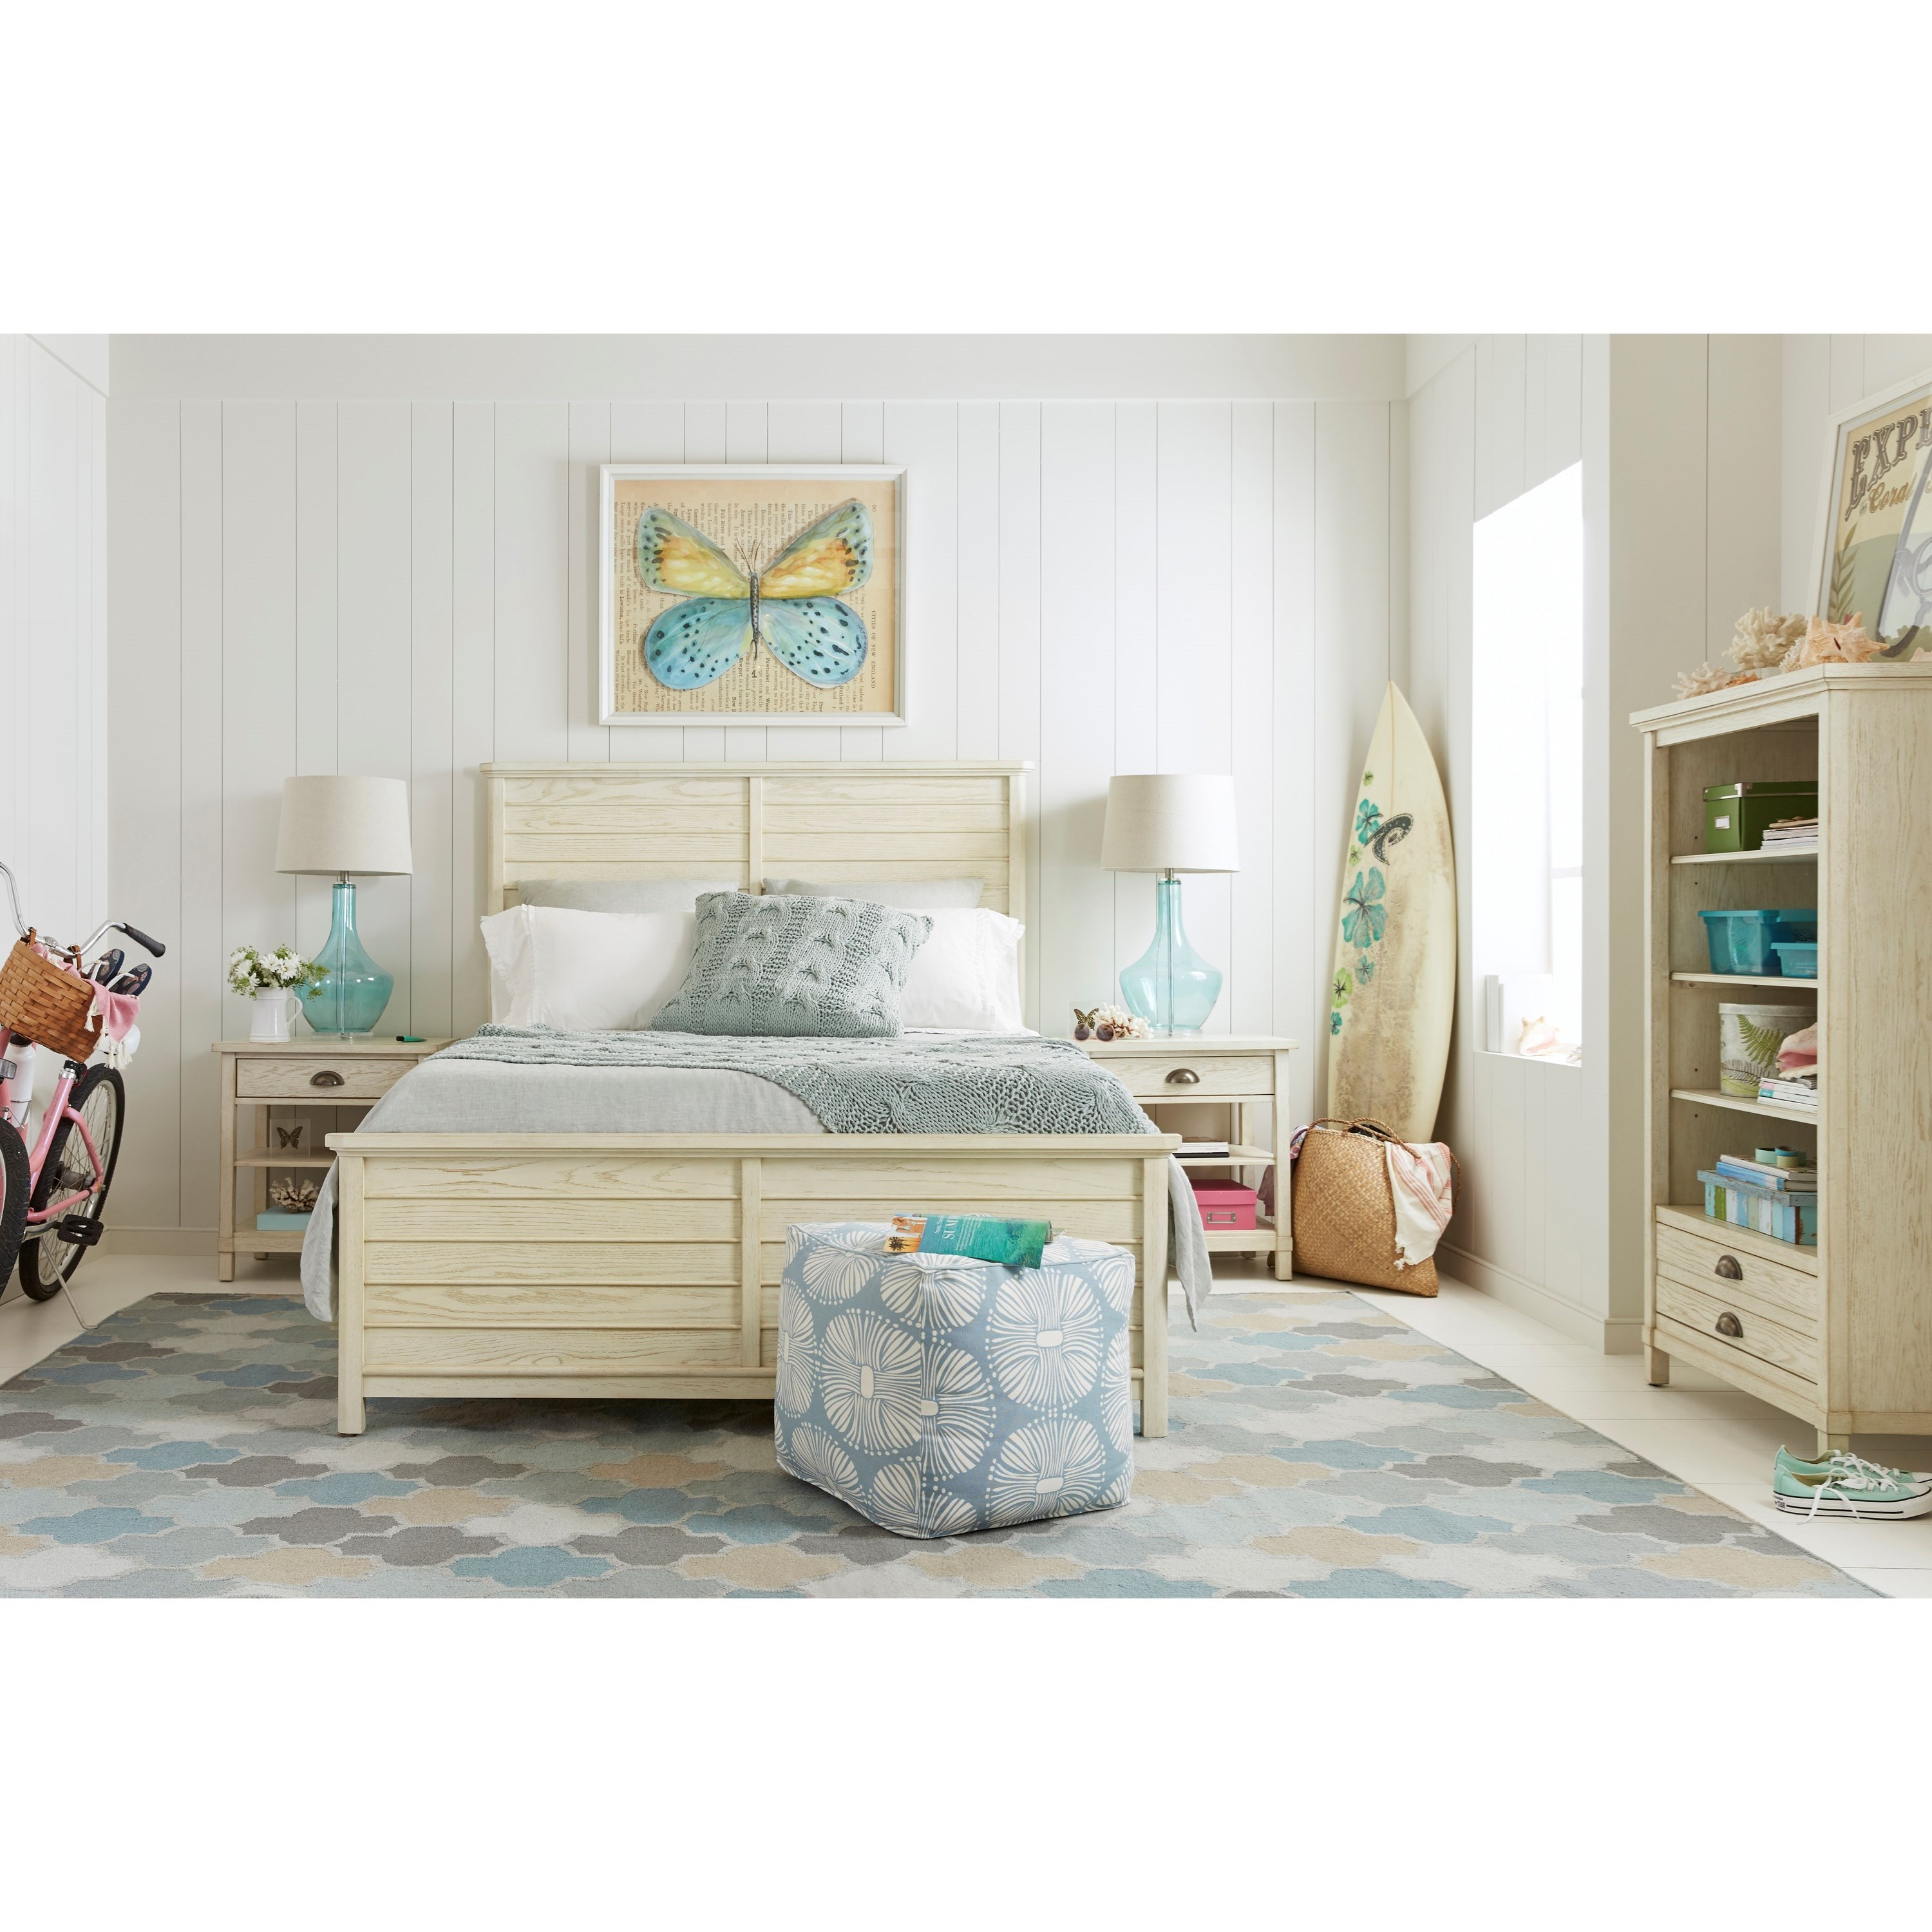 Stone & Leigh Furniture Driftwood Park Queen Bedroom Group - Item Number: 536-23 Q Bedroom Group 1